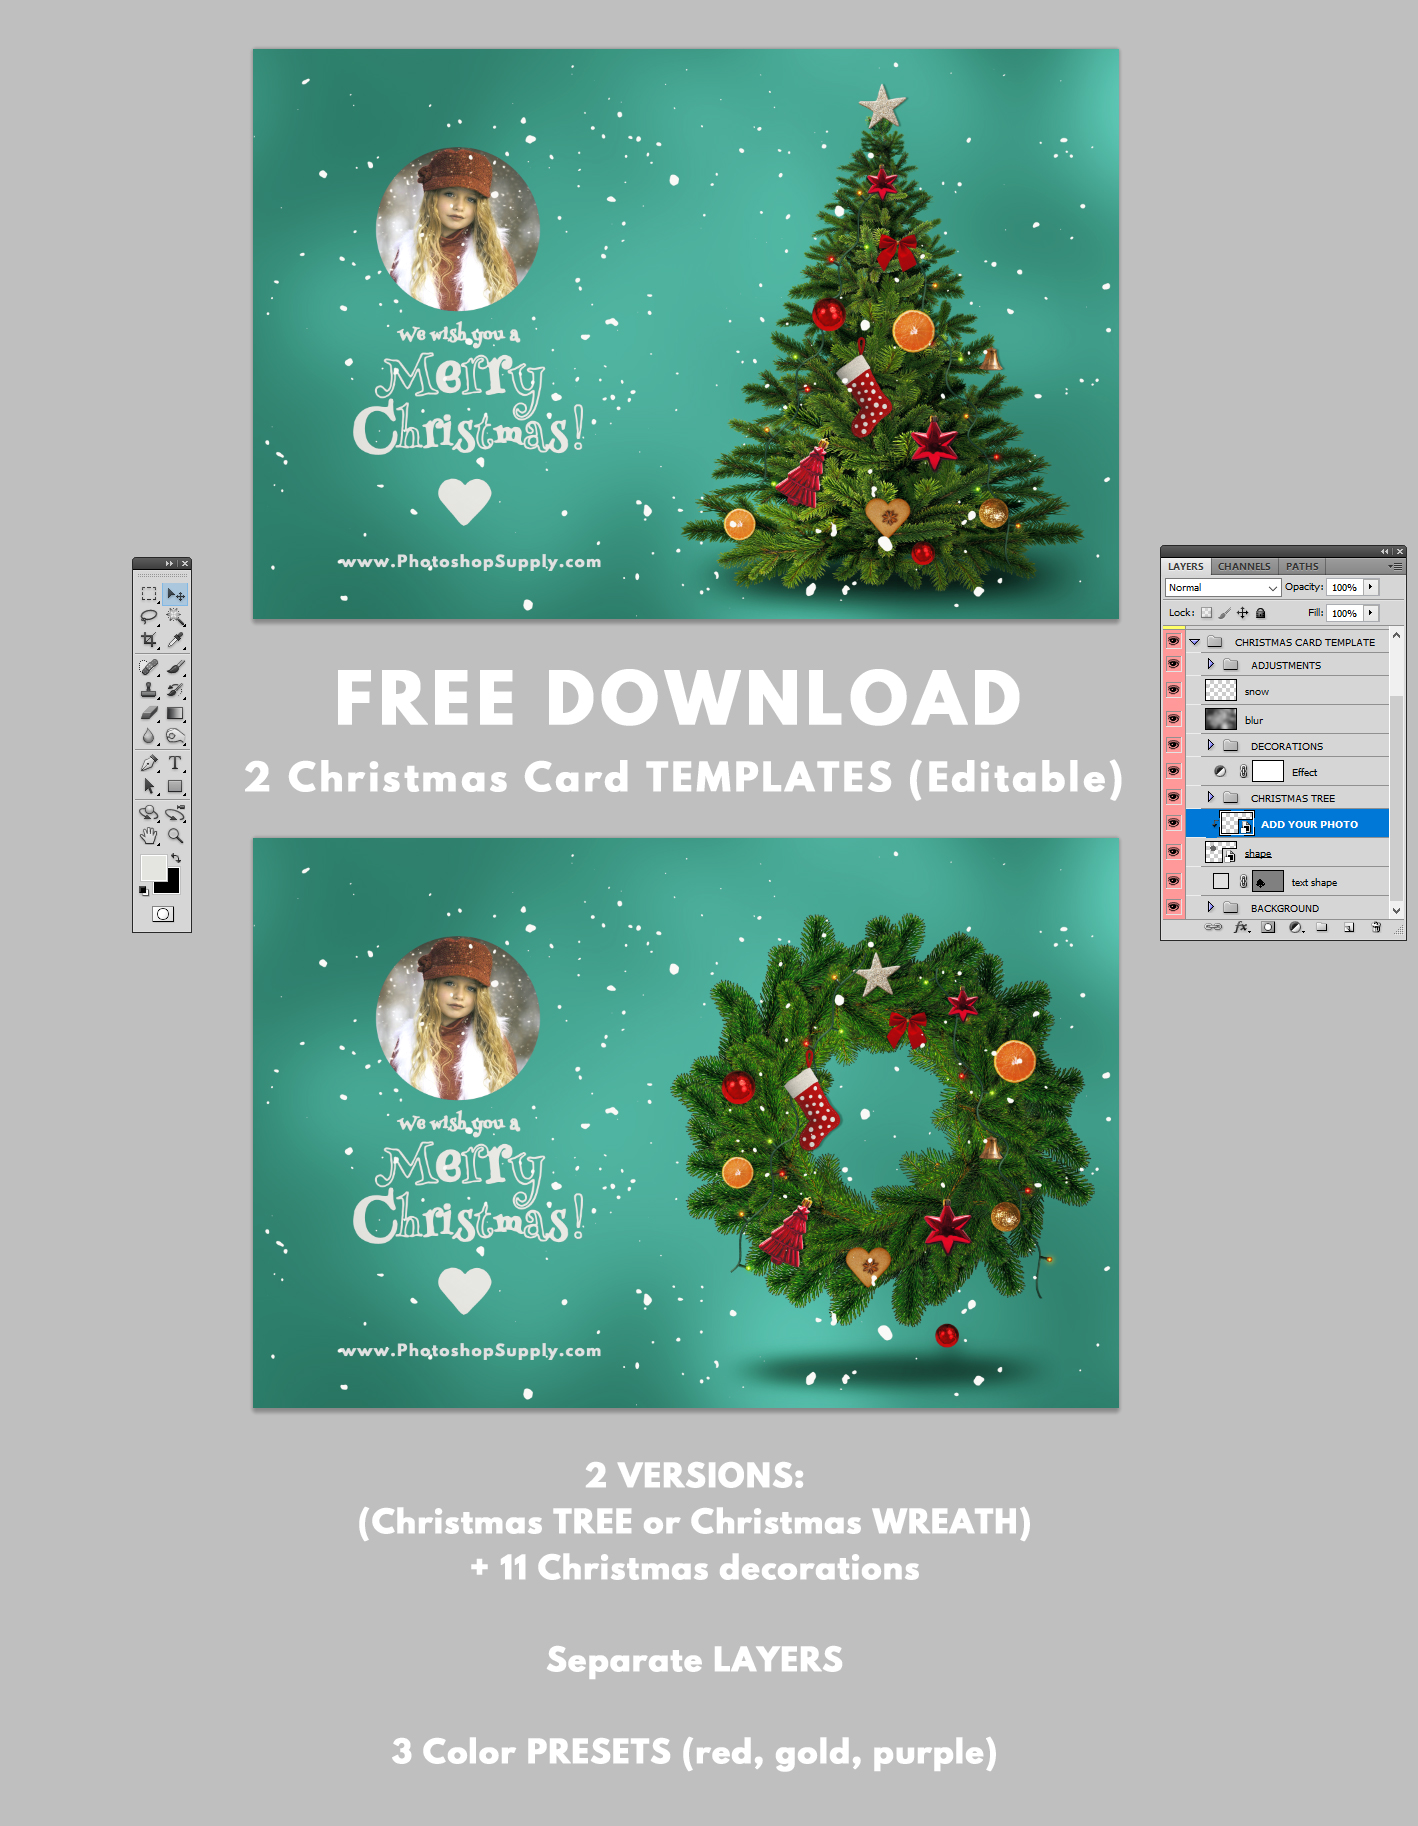 Christmas Card Templates For Photoshop Photoshop Supply